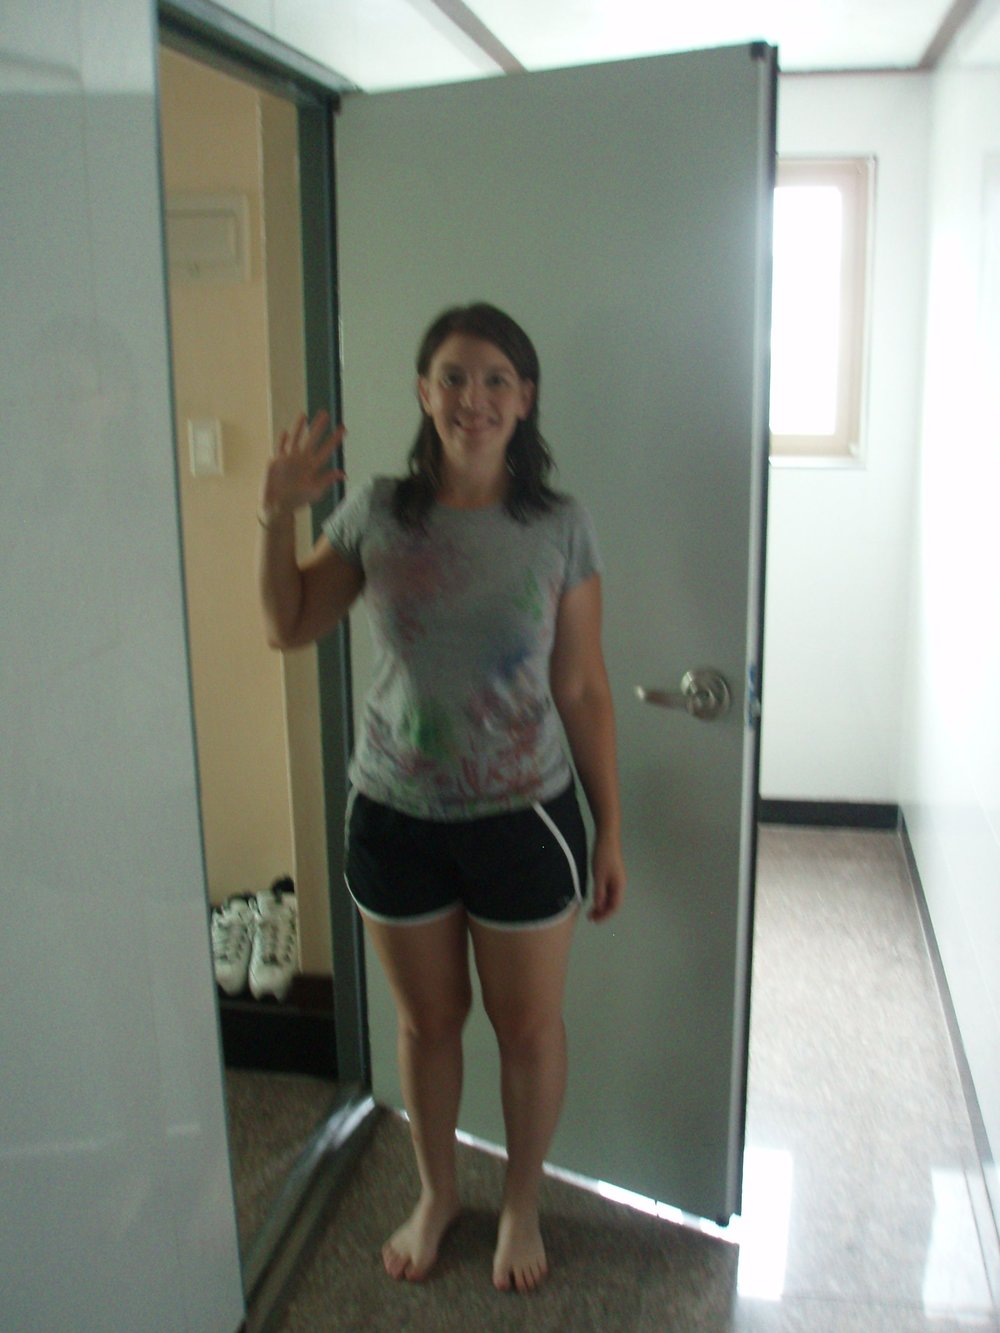 Erin-in-our-door-e1346668025765.jpg